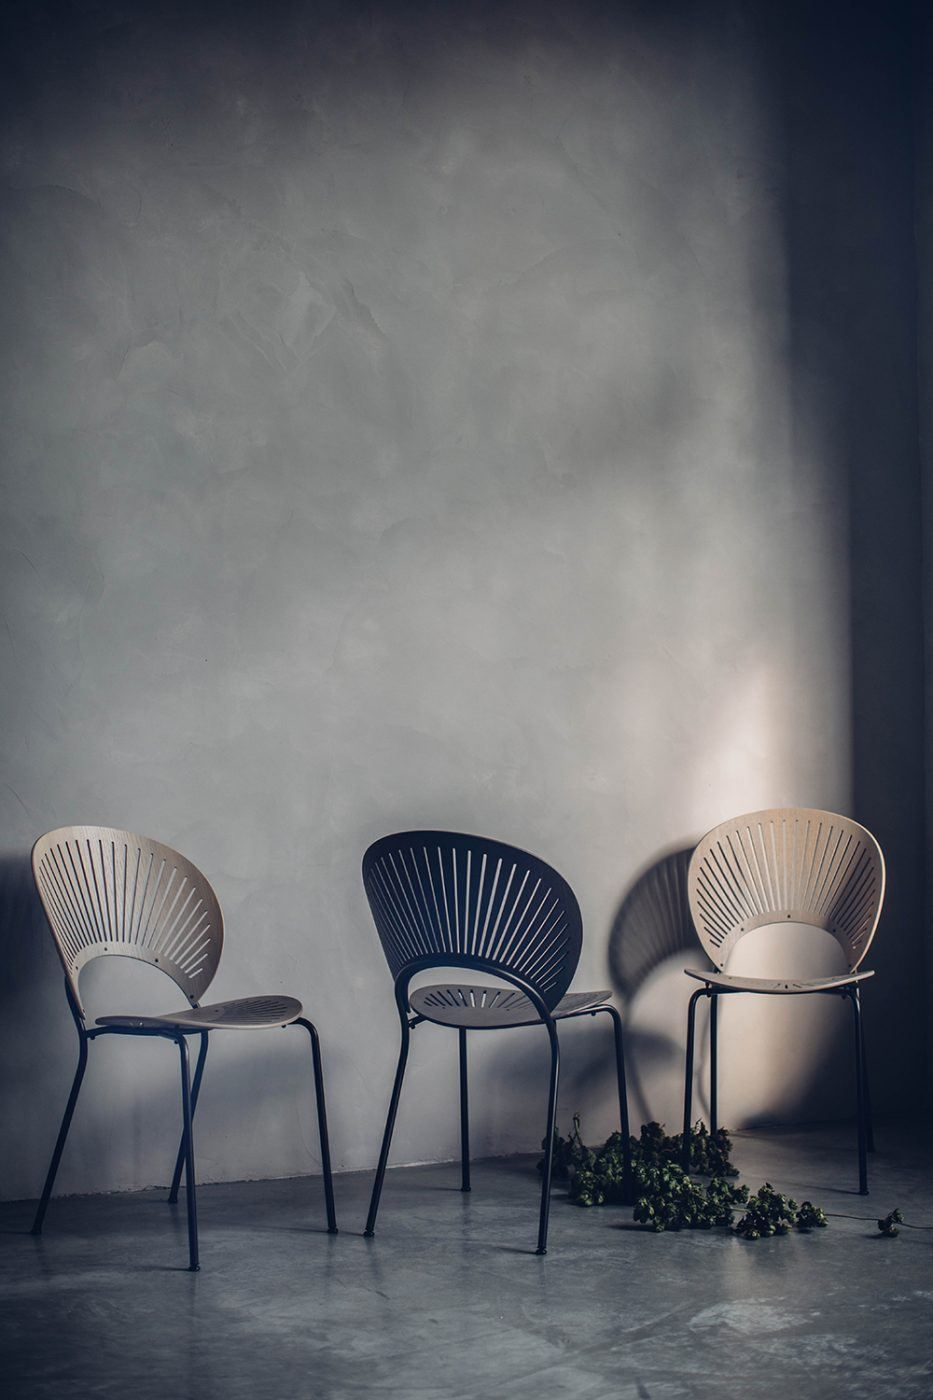 Trinidad chair by nanna ditzel for fredericia concrete interiors also best at the table images harvest decorations ideas mesas rh pinterest